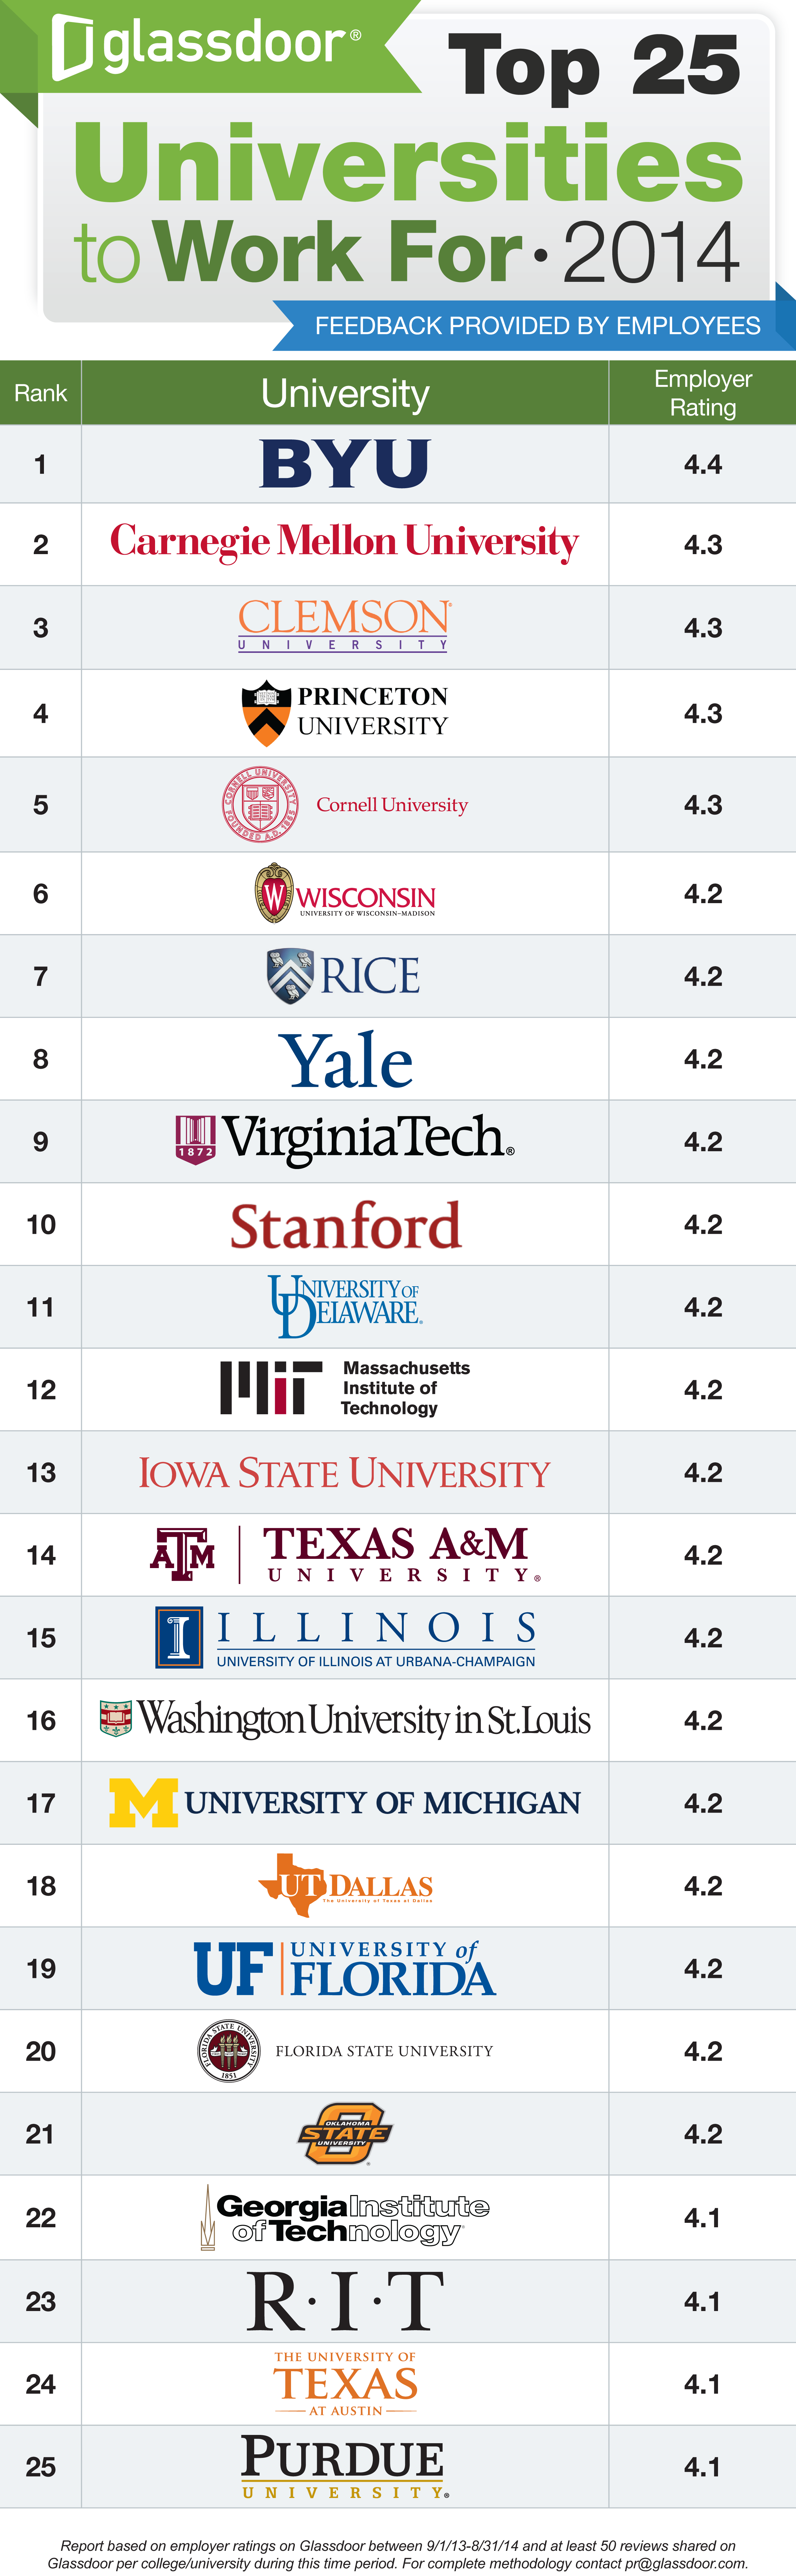 Glassdoor's 4th annual top 25 universities to work for